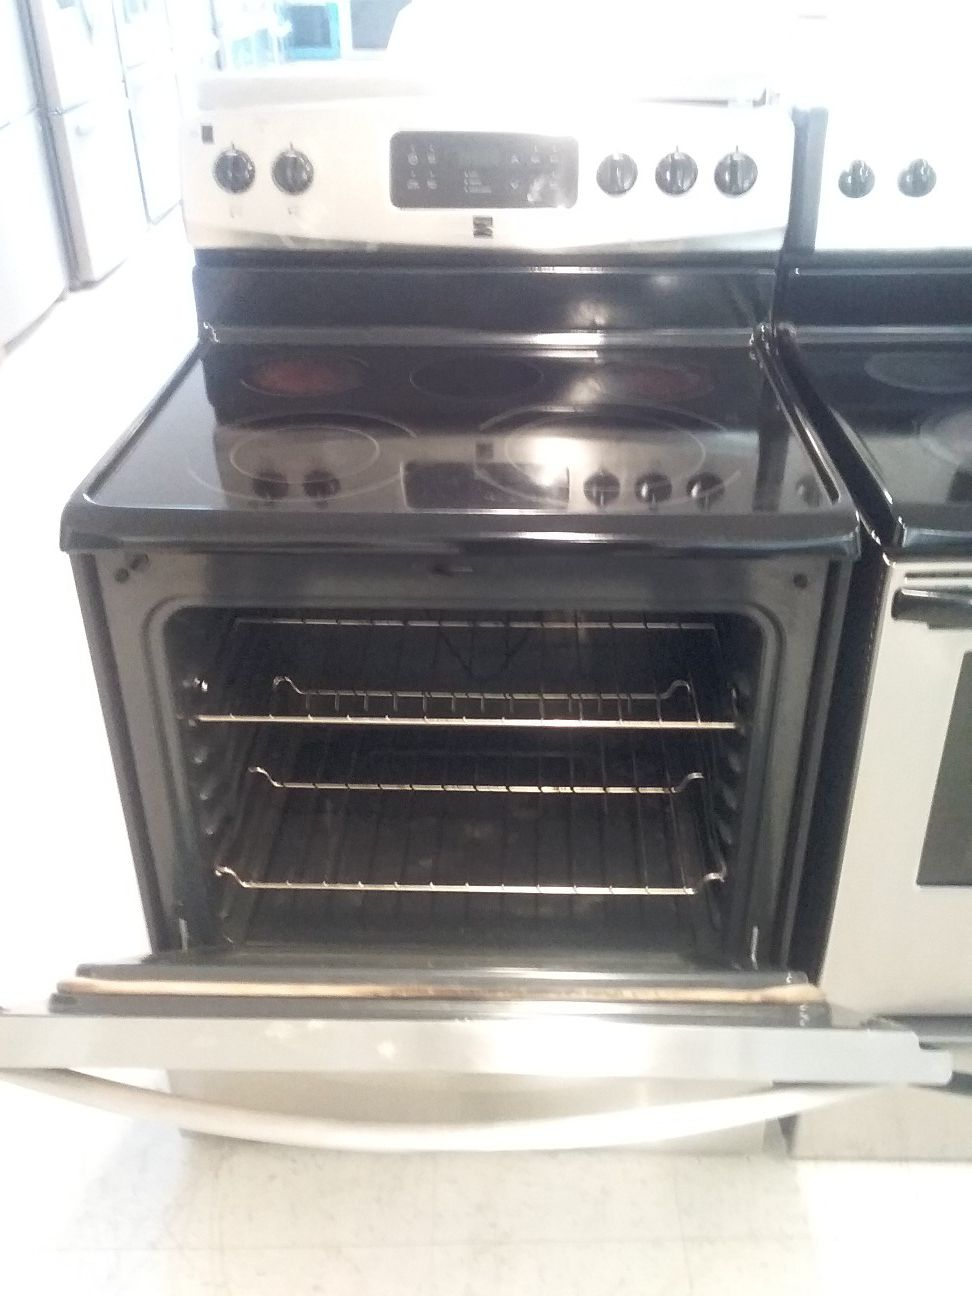 Kenmore elctric stove stainless steel used good condition 90days warranty